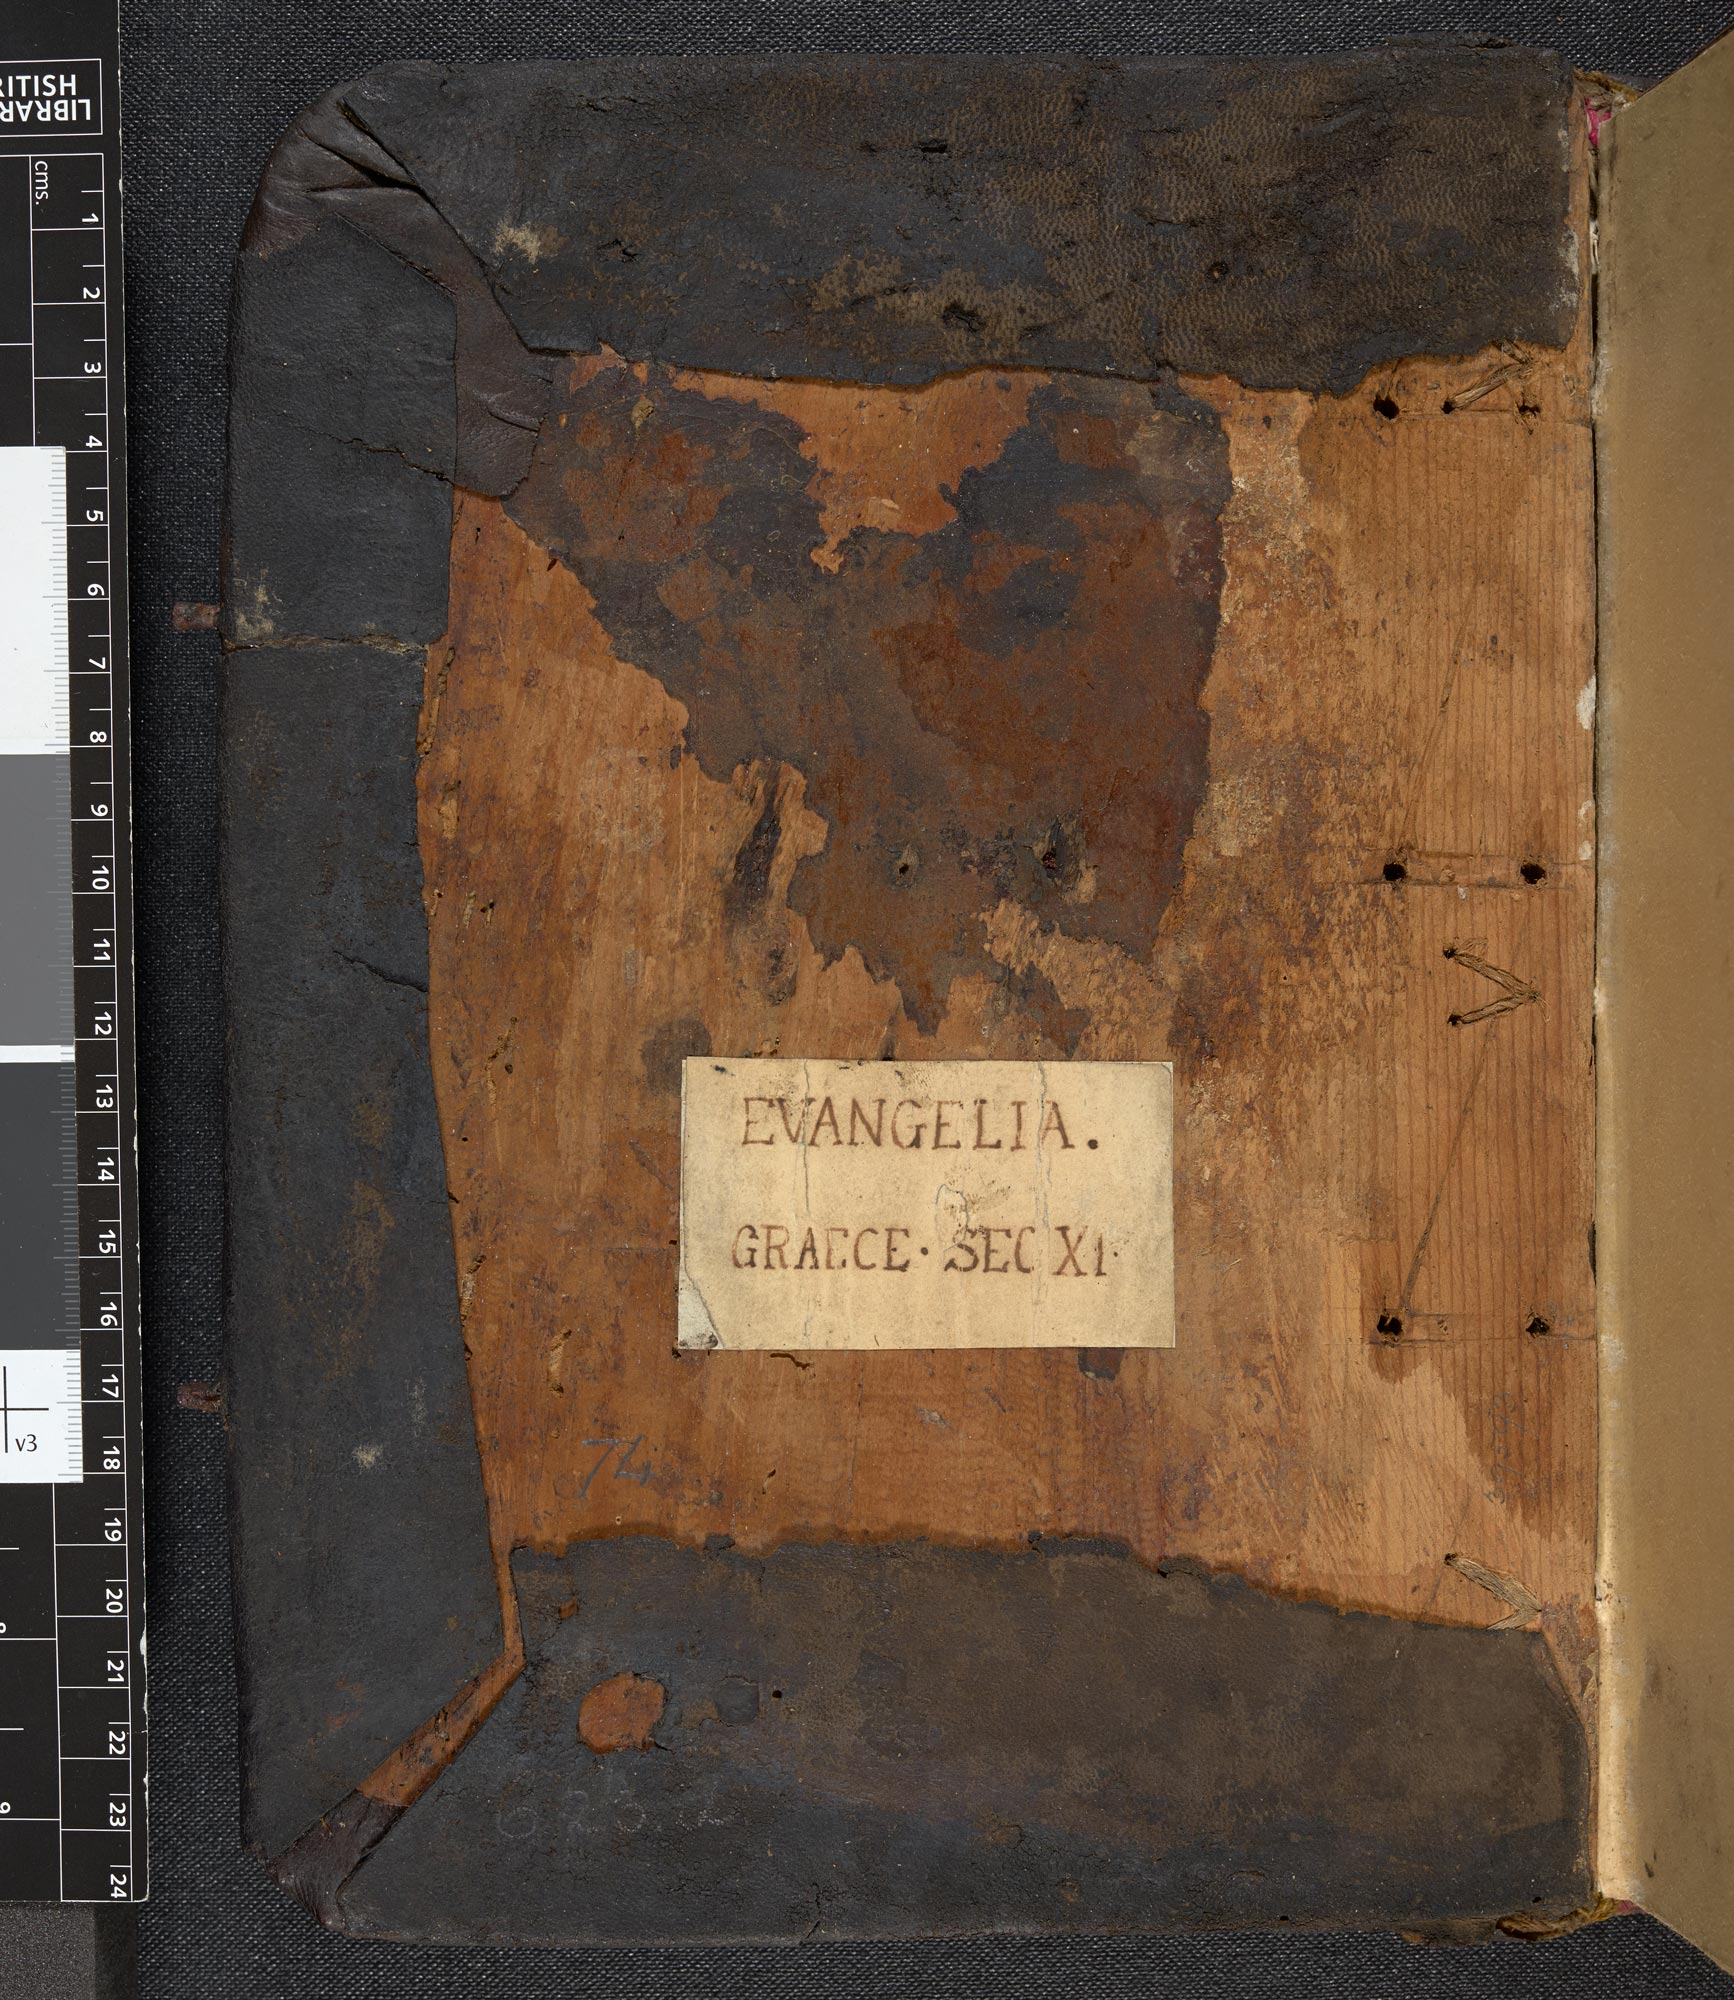 Gospel Book with recycled binding (Add MS 39593 fblefv)